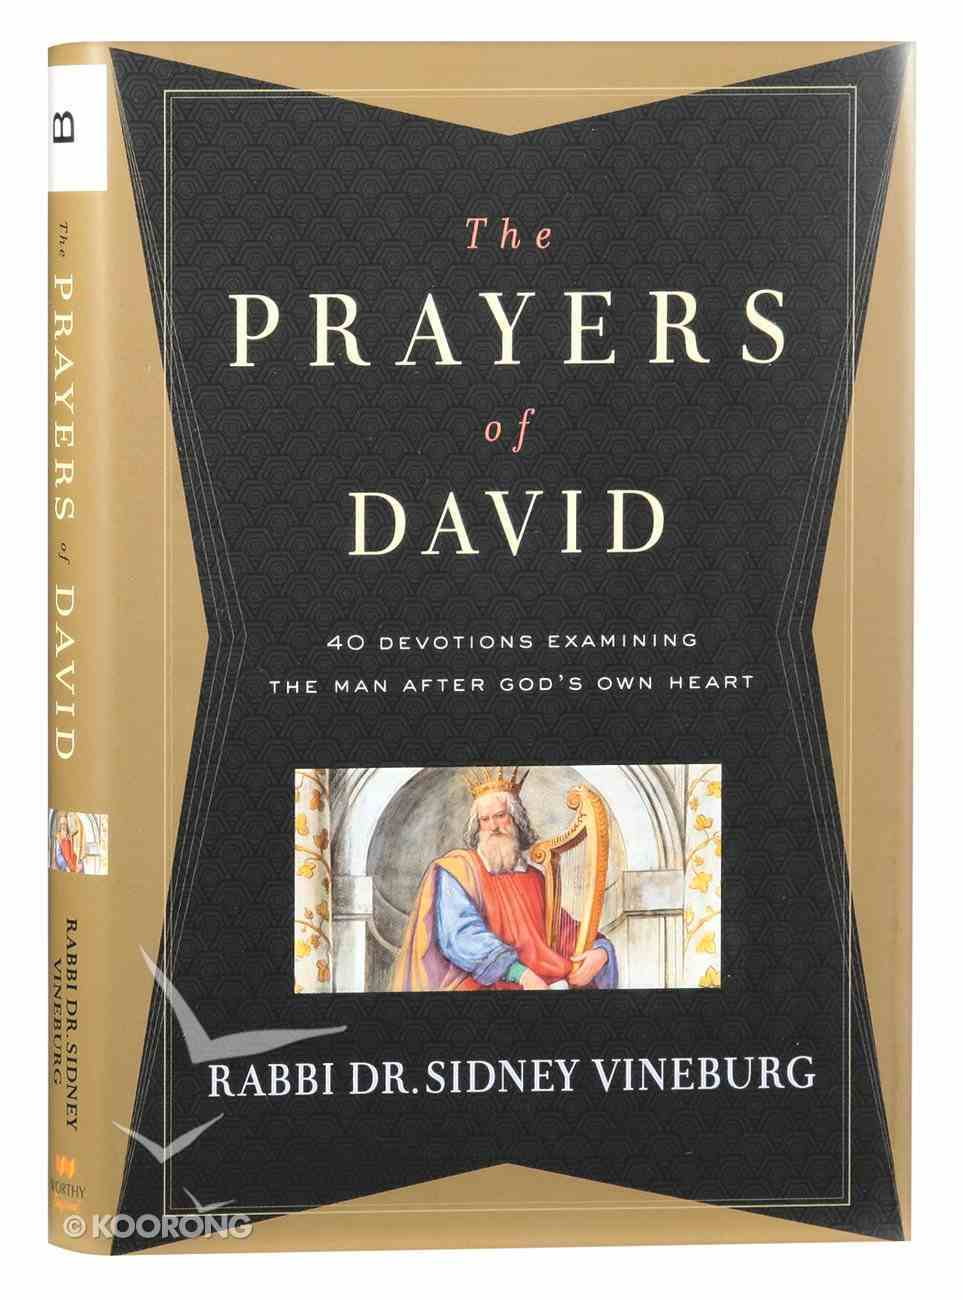 The Prayers of David: 40 Devotions Examining the Man After God's Own Heart Hardback